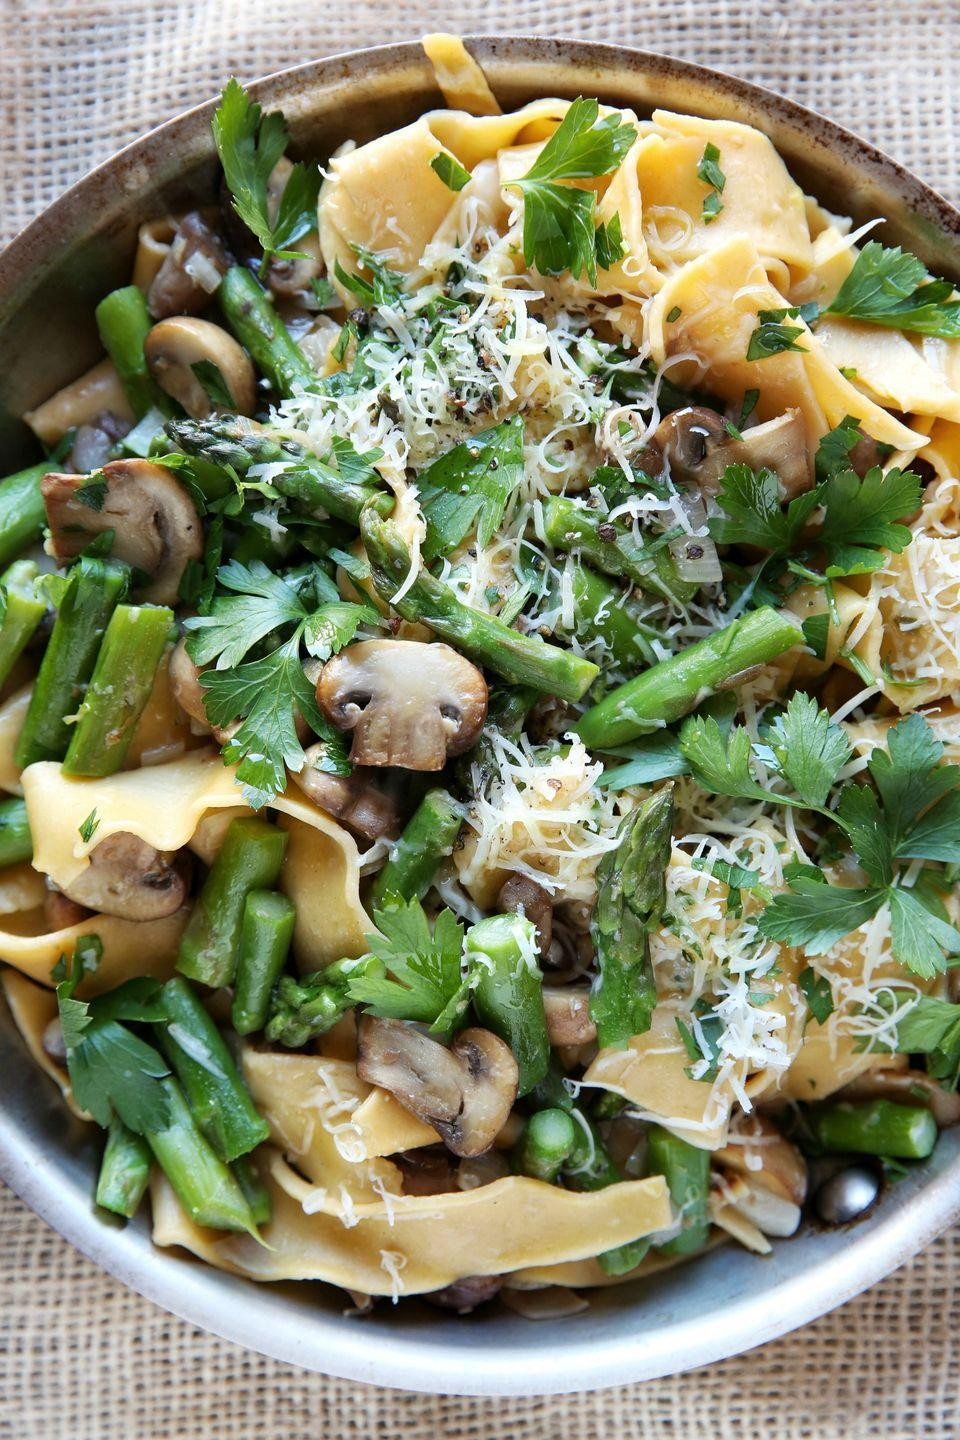 """<p>BRB, eating asparagus all season long.</p><p>Get the recipe from <a href=""""/cooking/recipe-ideas/recipes/a46724/spring-asparagus-and-mushroom-papardelle-recipe/"""" data-ylk=""""slk:Delish"""" class=""""link rapid-noclick-resp"""">Delish</a>.</p>"""